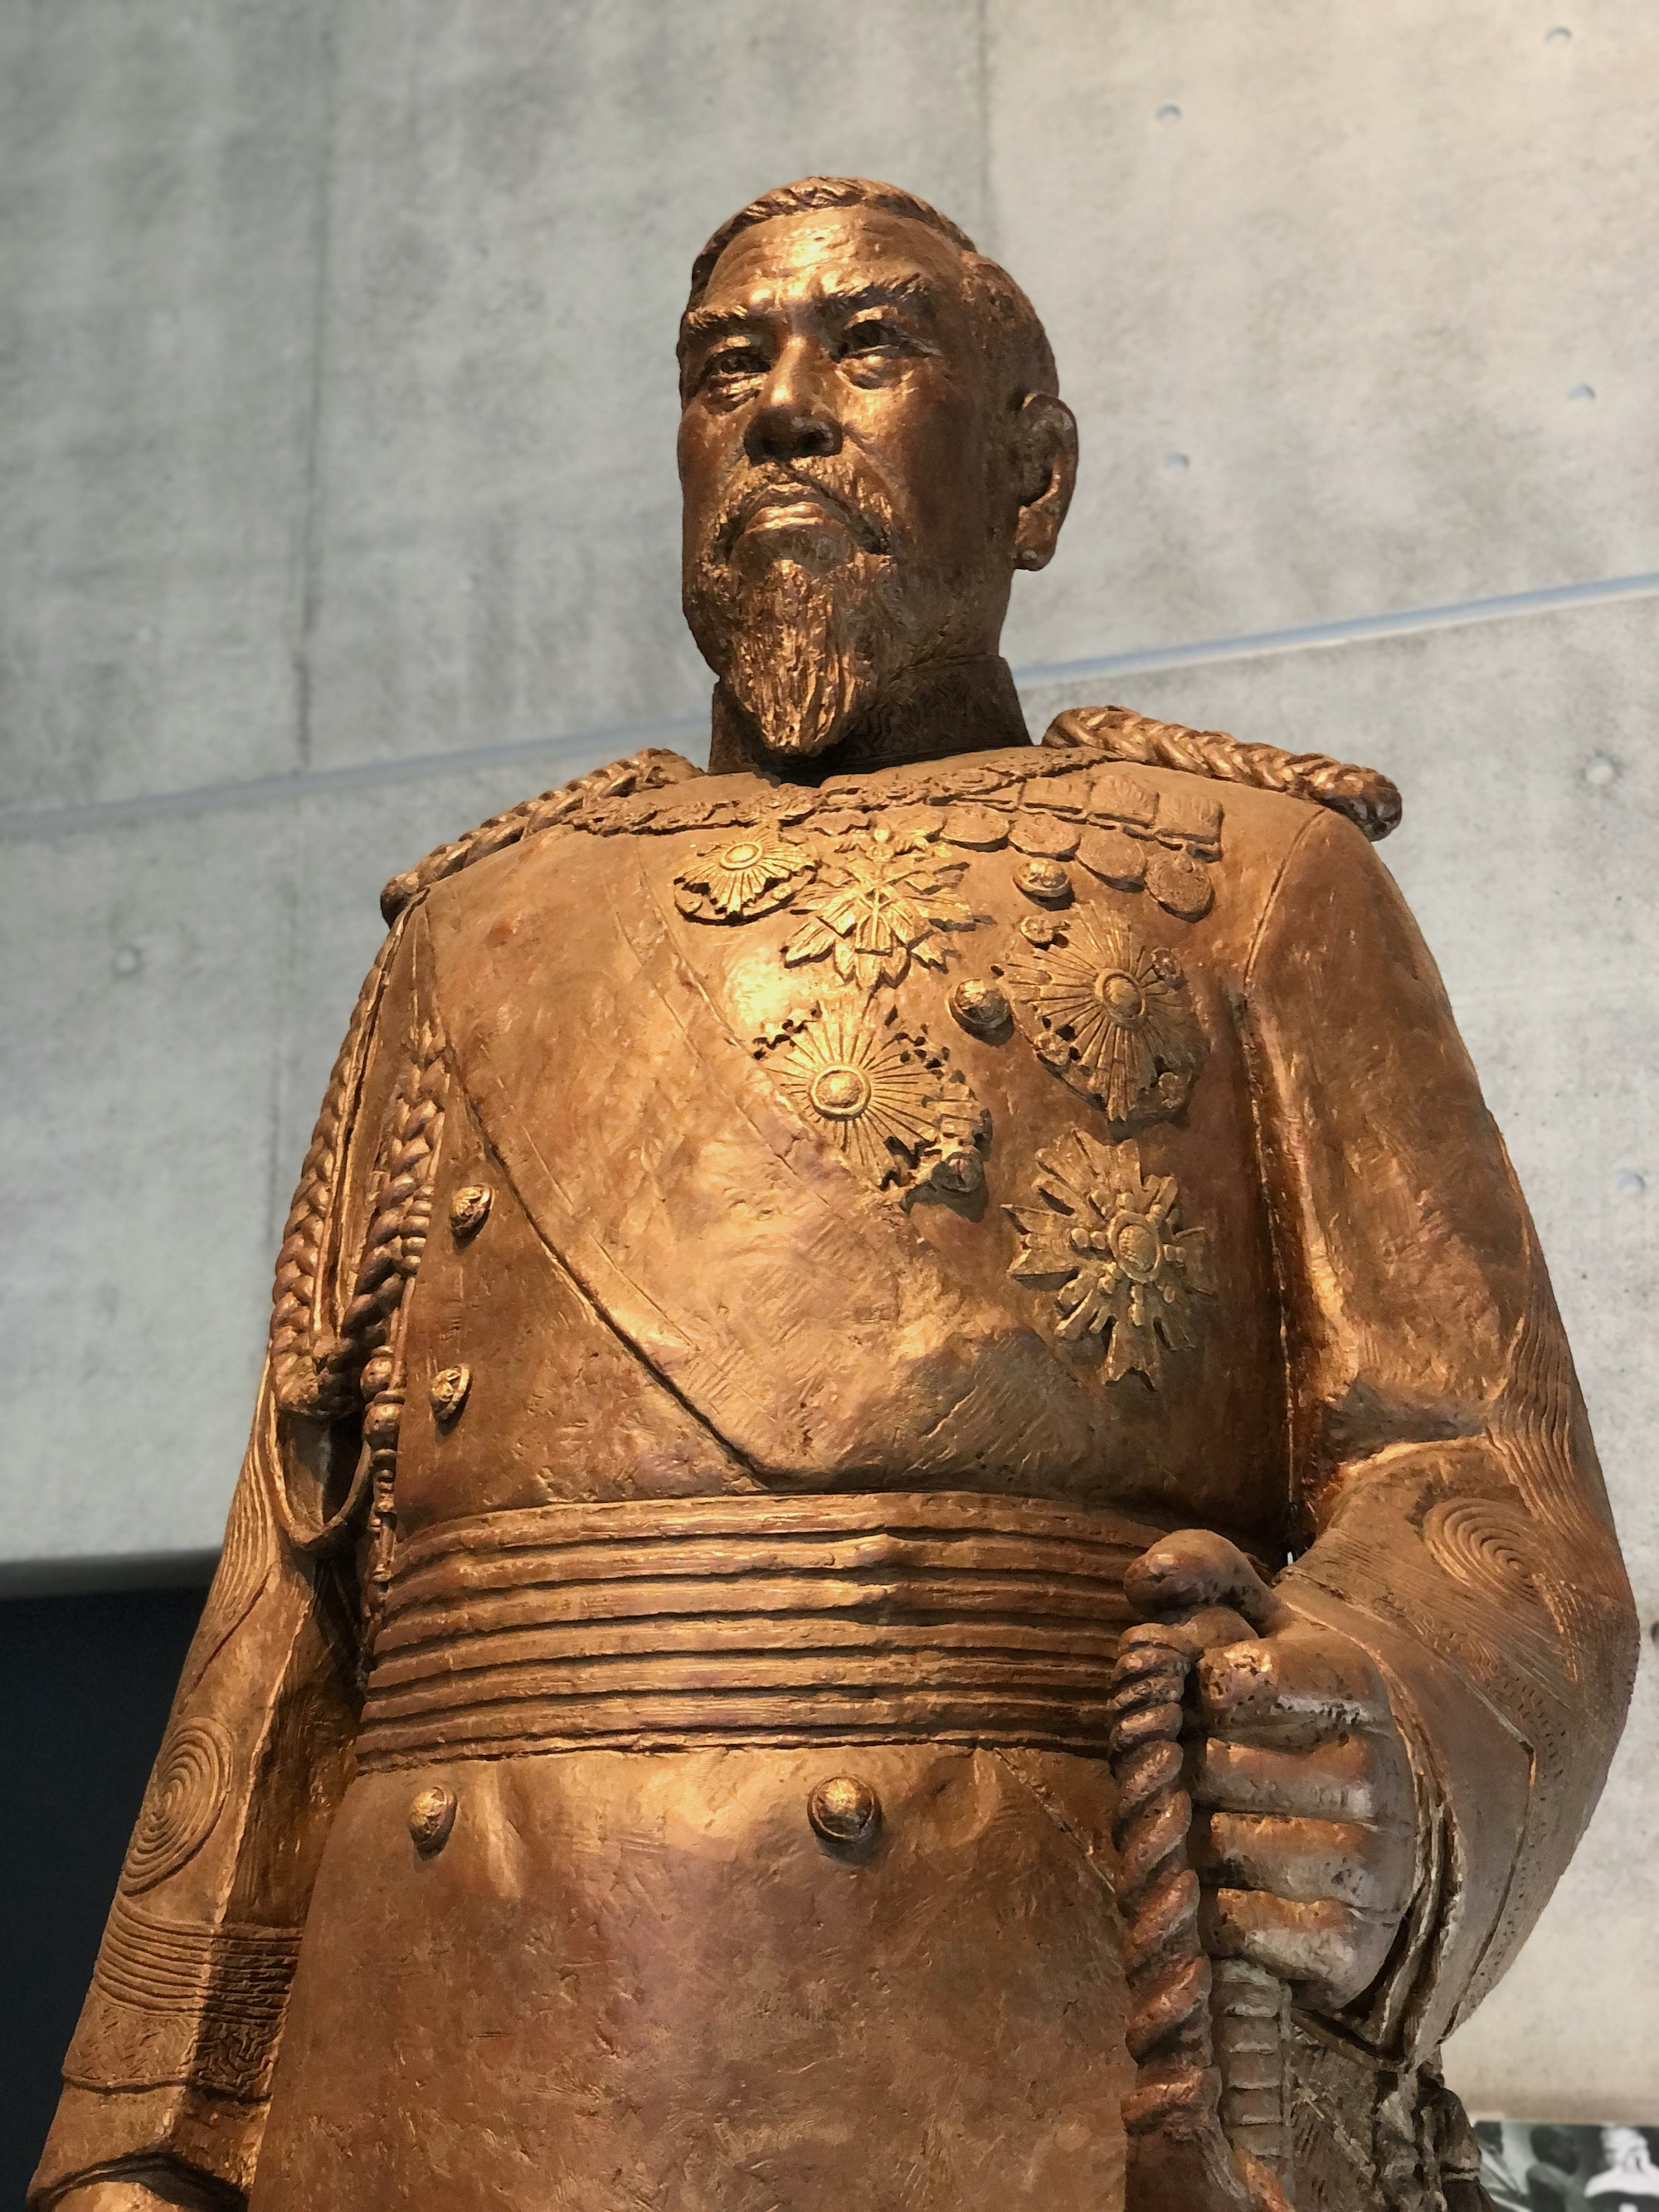 Statue of Meiji emperor in military regalia